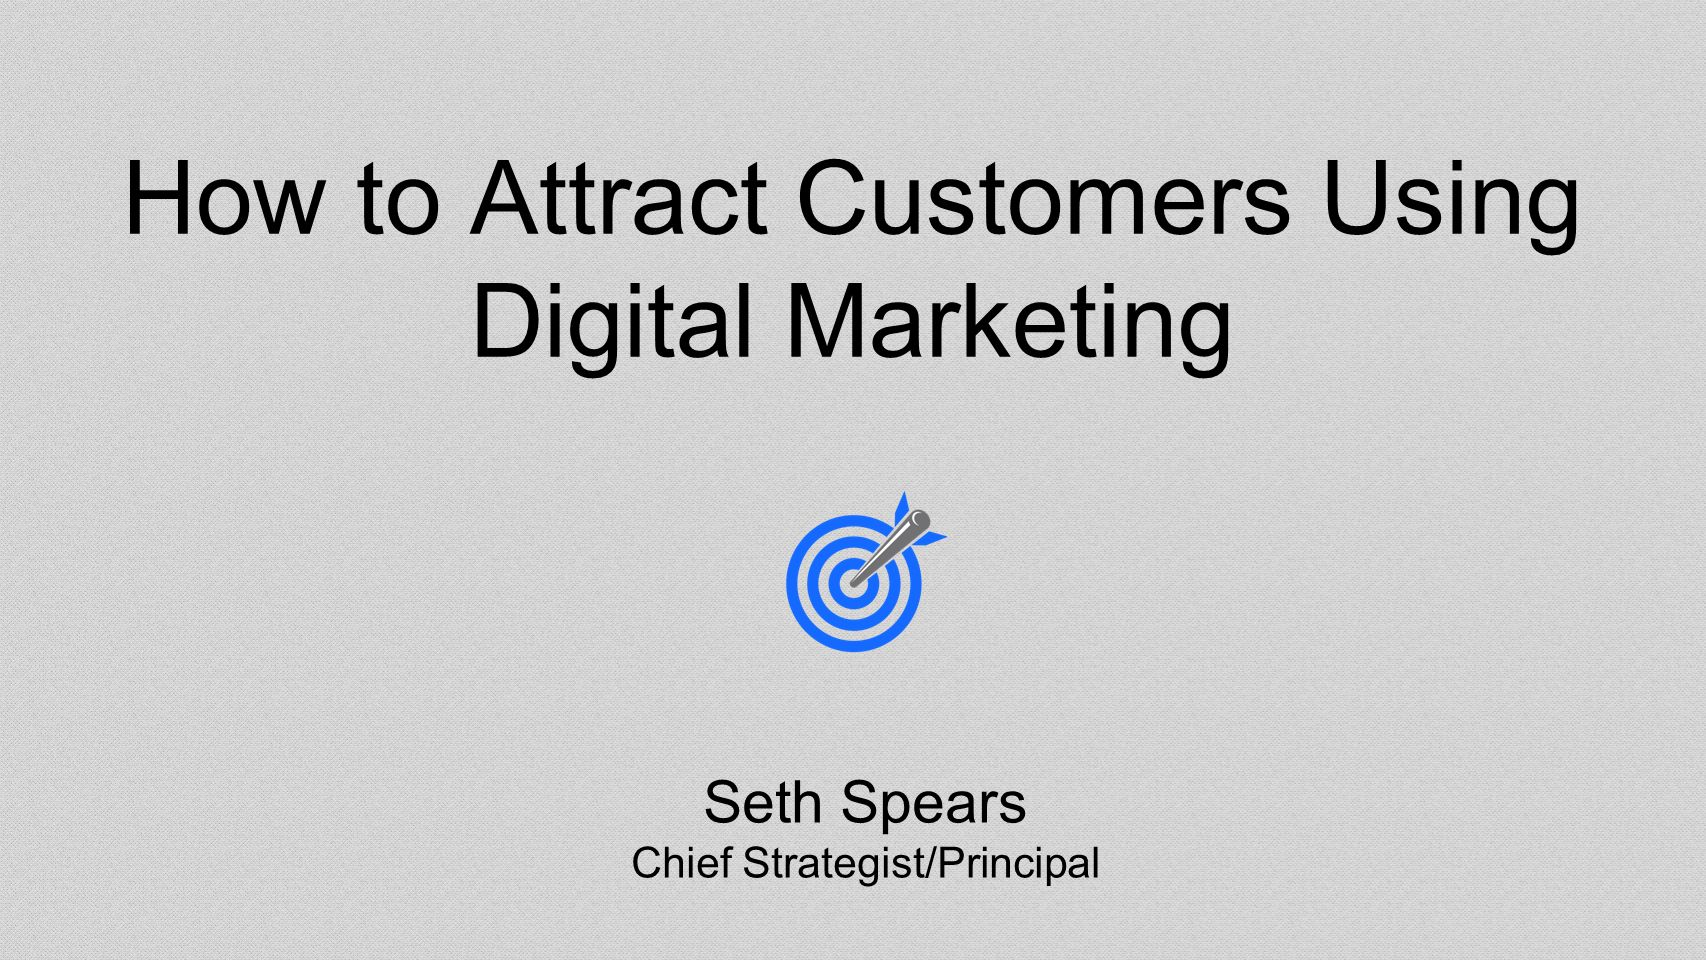 How to Attract Customers Using Digital Marketing Seth Spears Chief Strategist/Principal